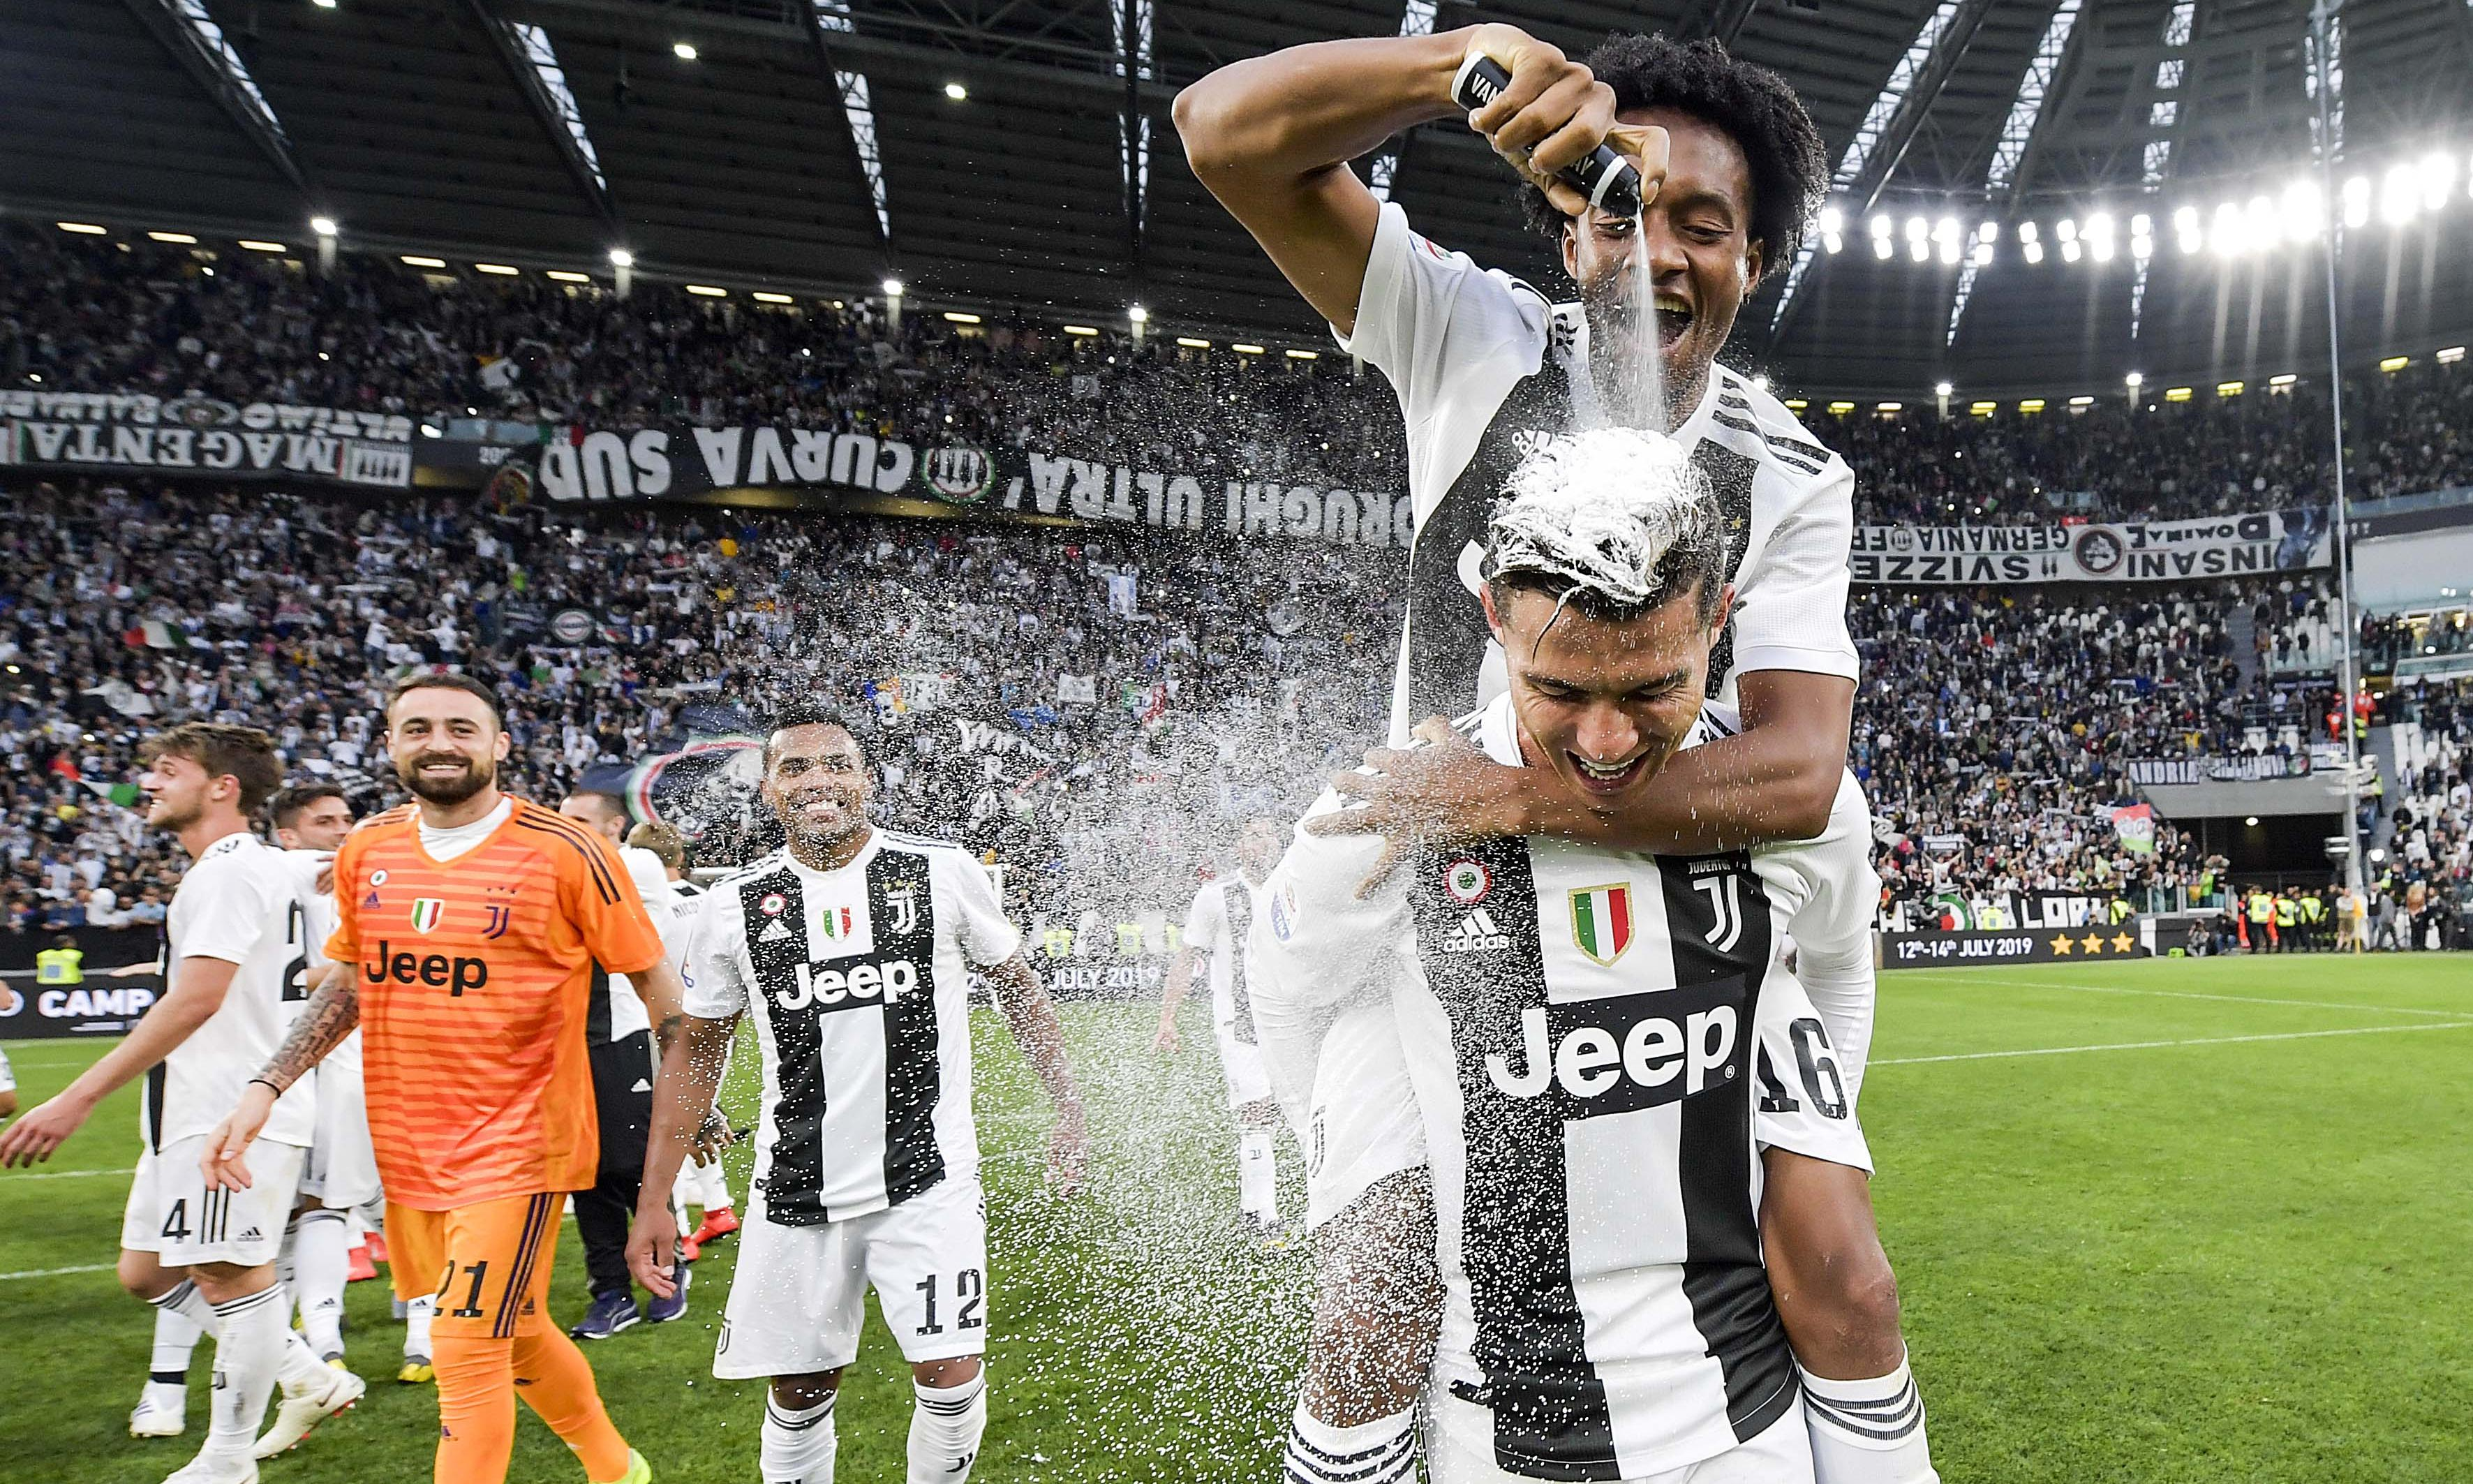 Juventus's muted title celebrations an acknowledgment of work to be done